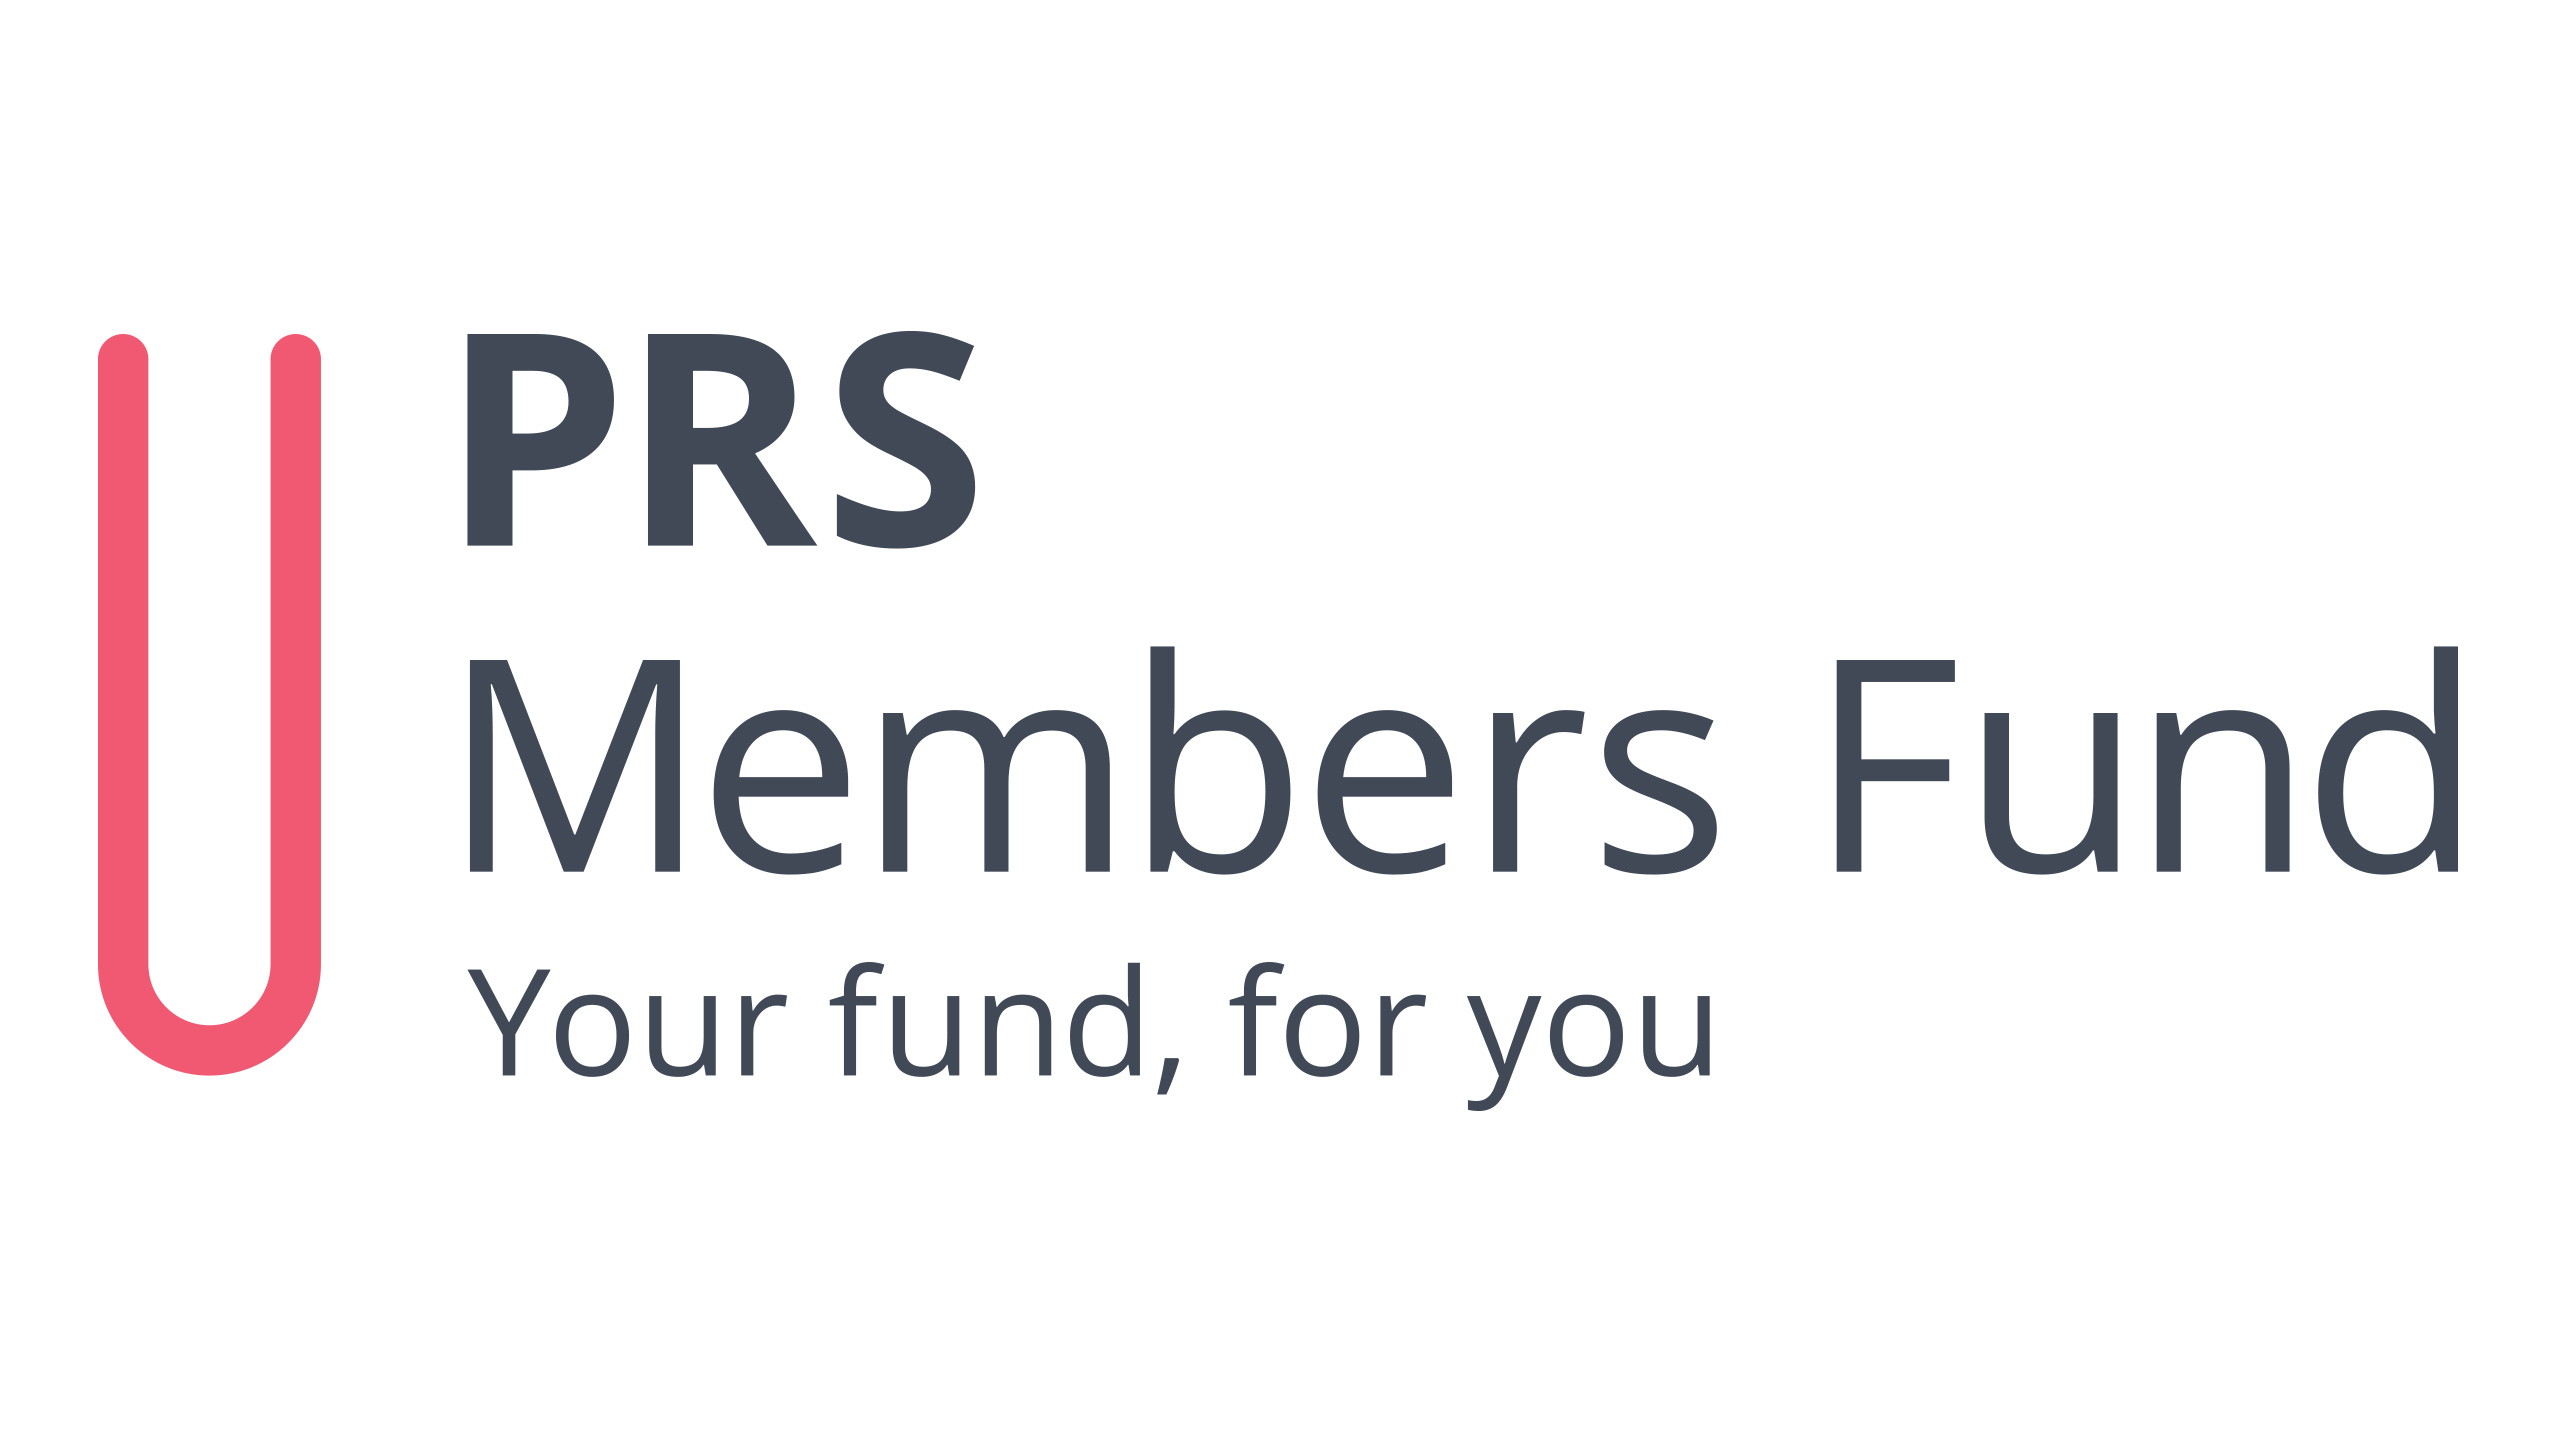 prs-members-fund-logotype-red-blue-rgb